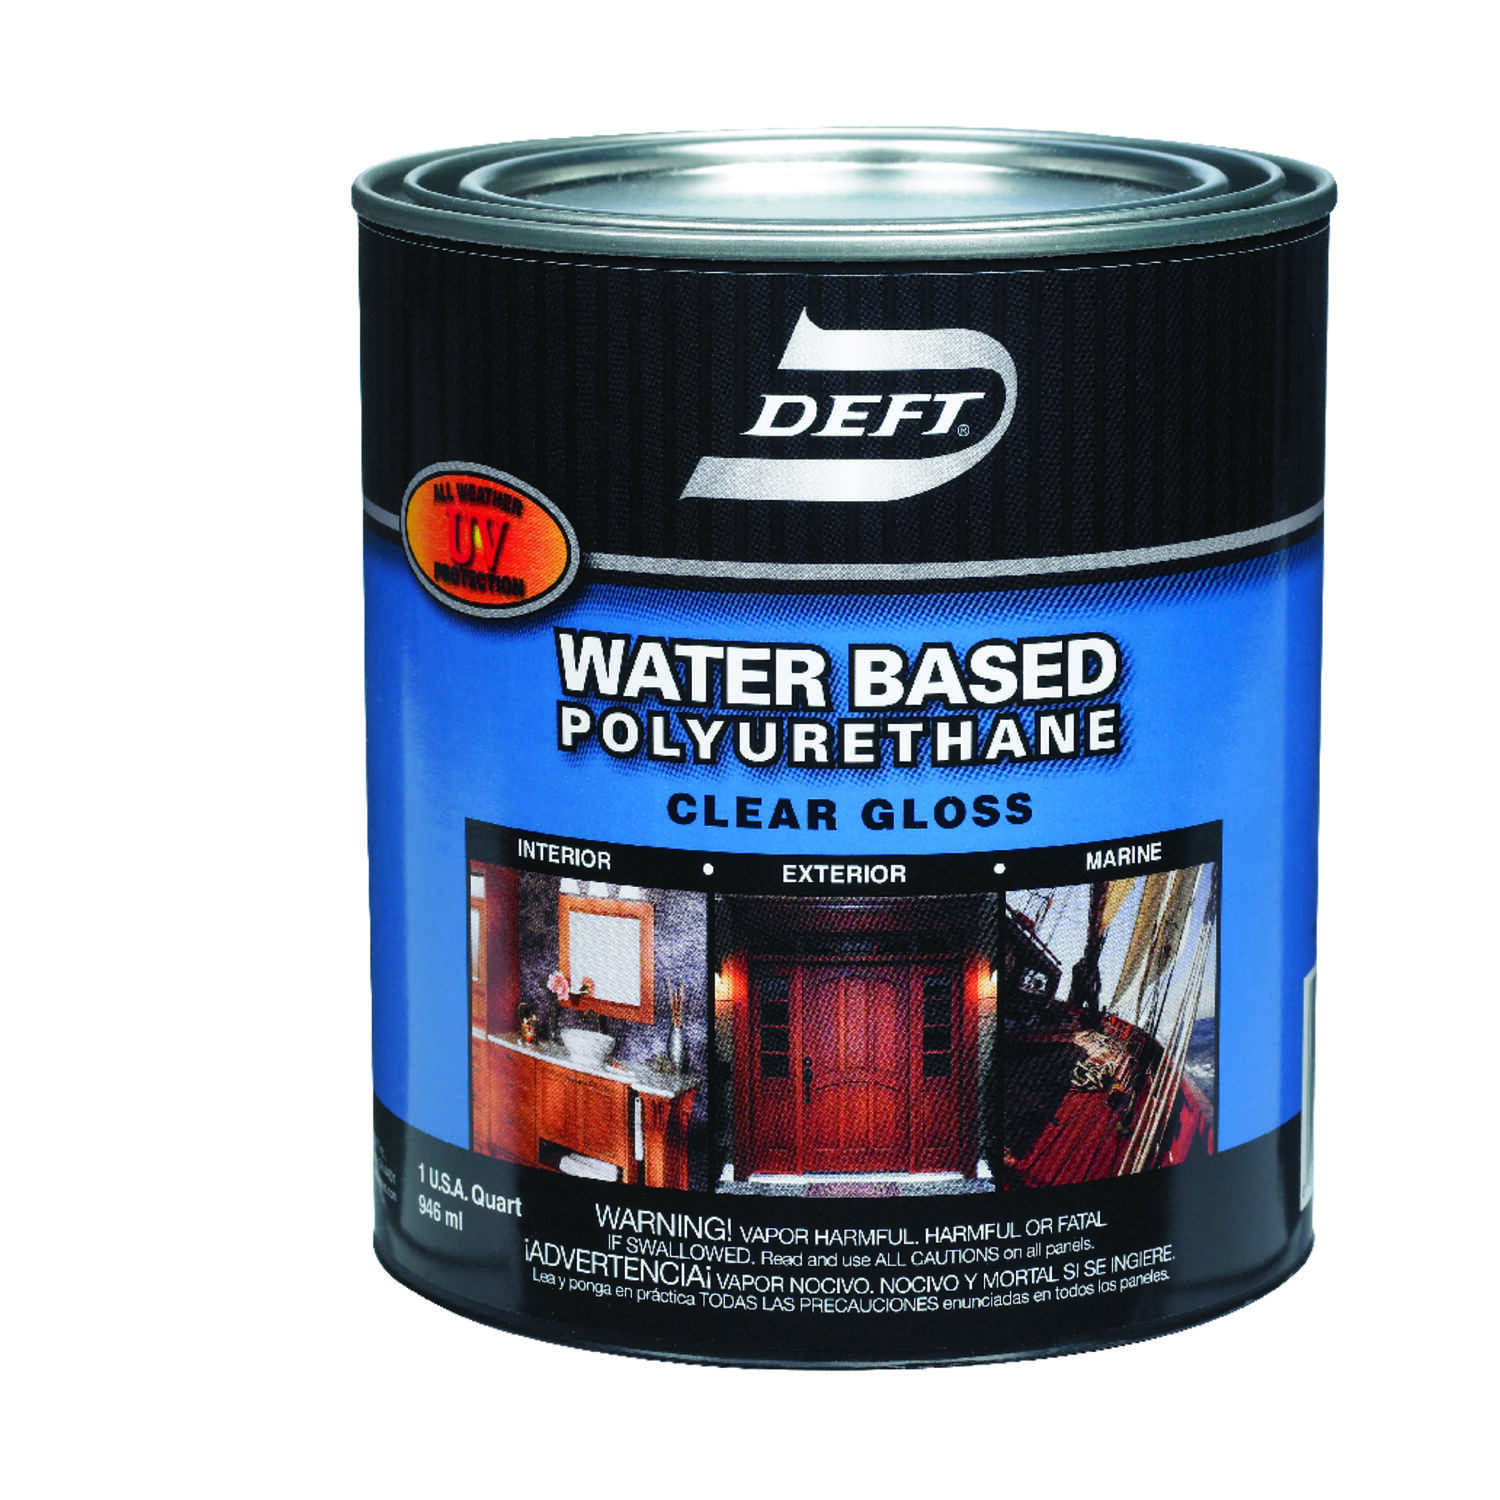 Deft  Water Based Polyurethane  Gloss  Clear  Waterborne Wood Finish  1 qt.